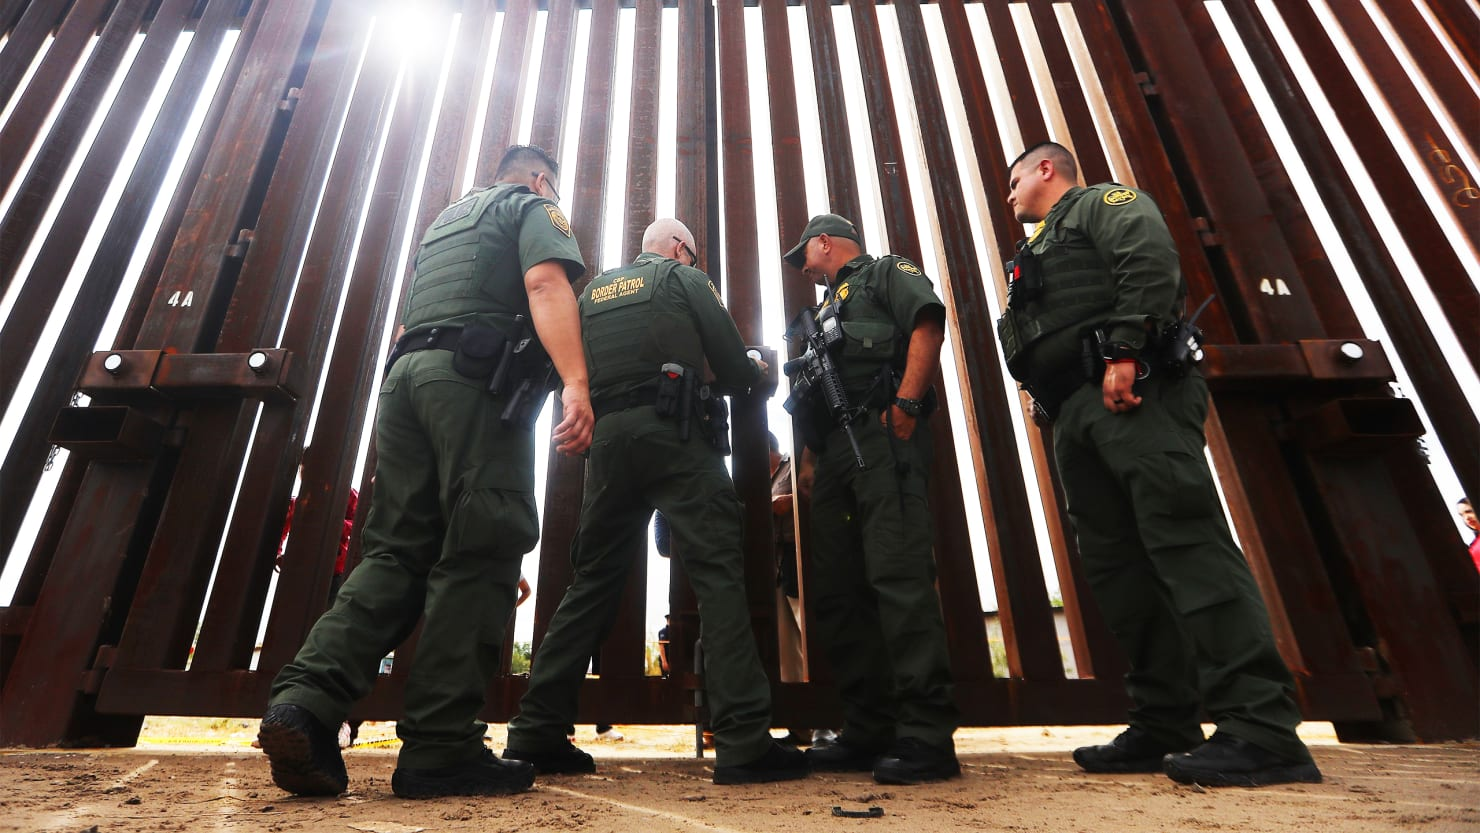 Immigrants stopped at correct border entry